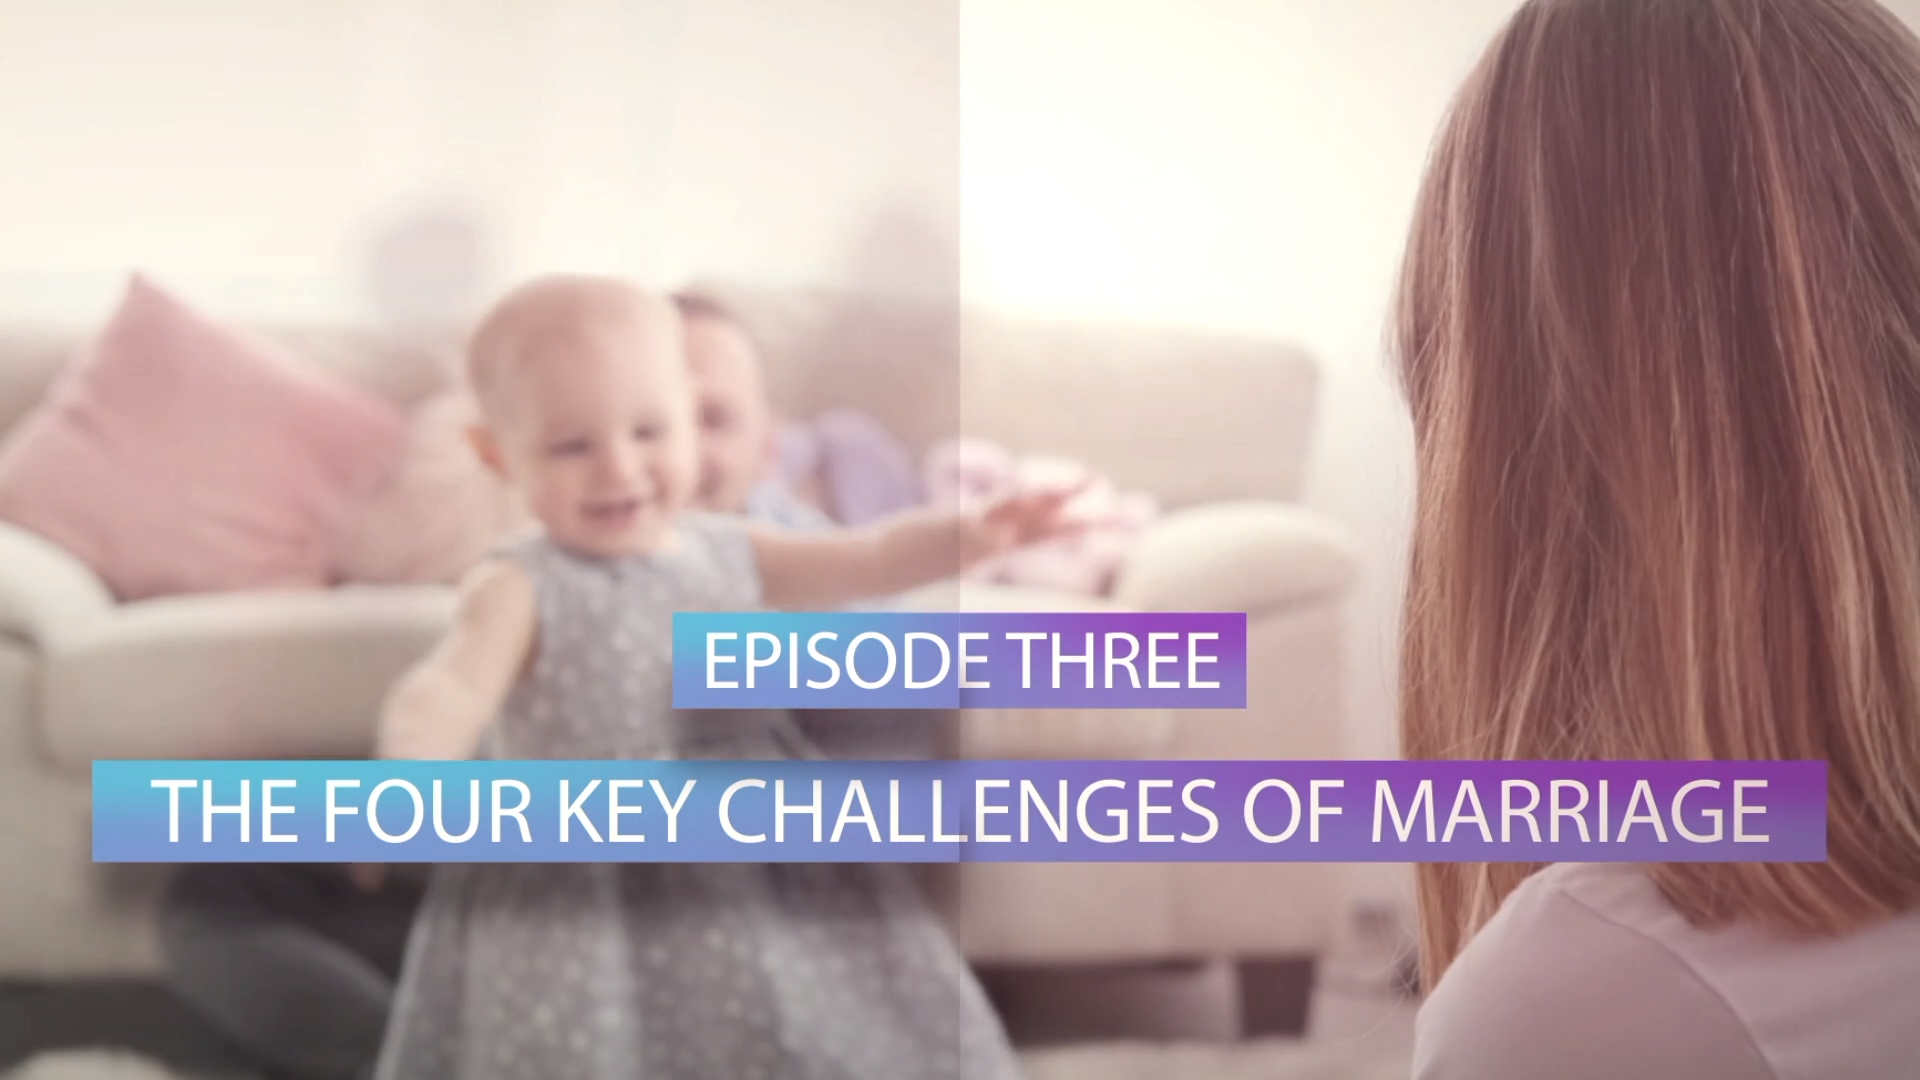 Episode 3 The Four Key Challenges of Marriage